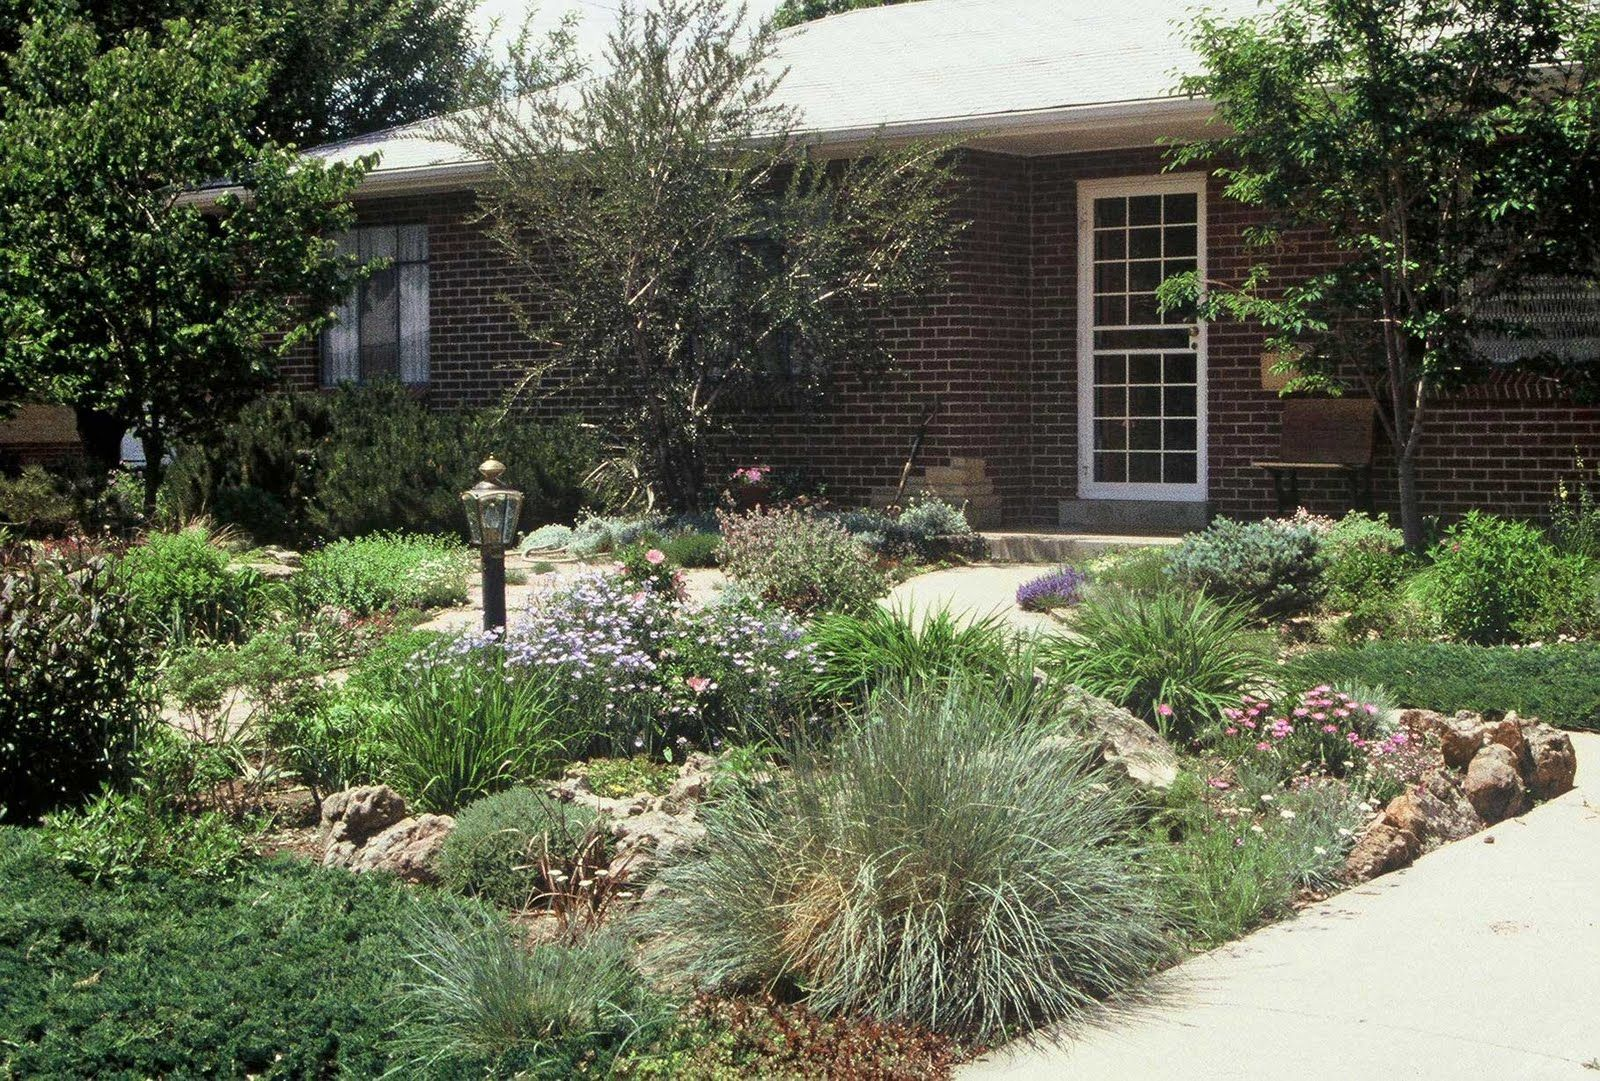 Simple landscaping ideas for front yards Backyard Ideas